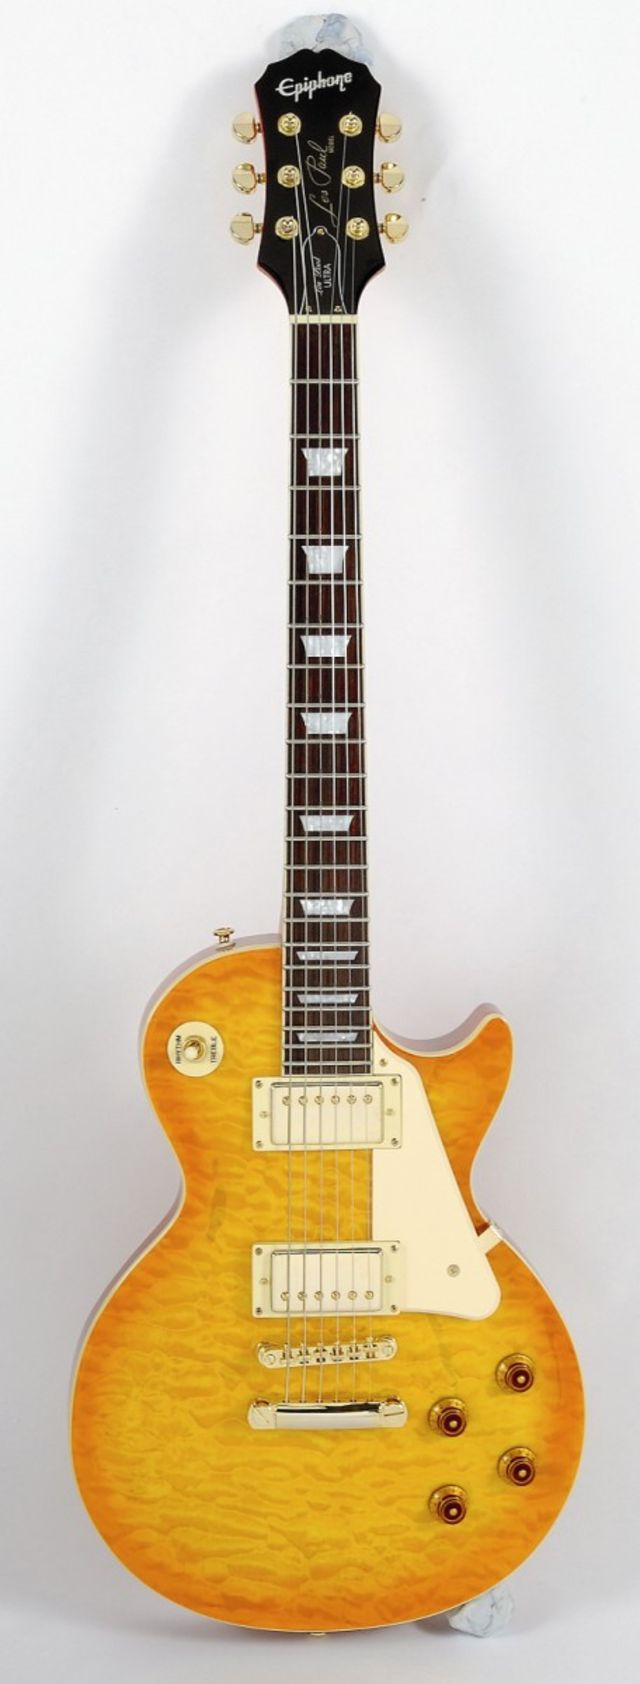 The Epiphone Les Paul Ultra in all its glory